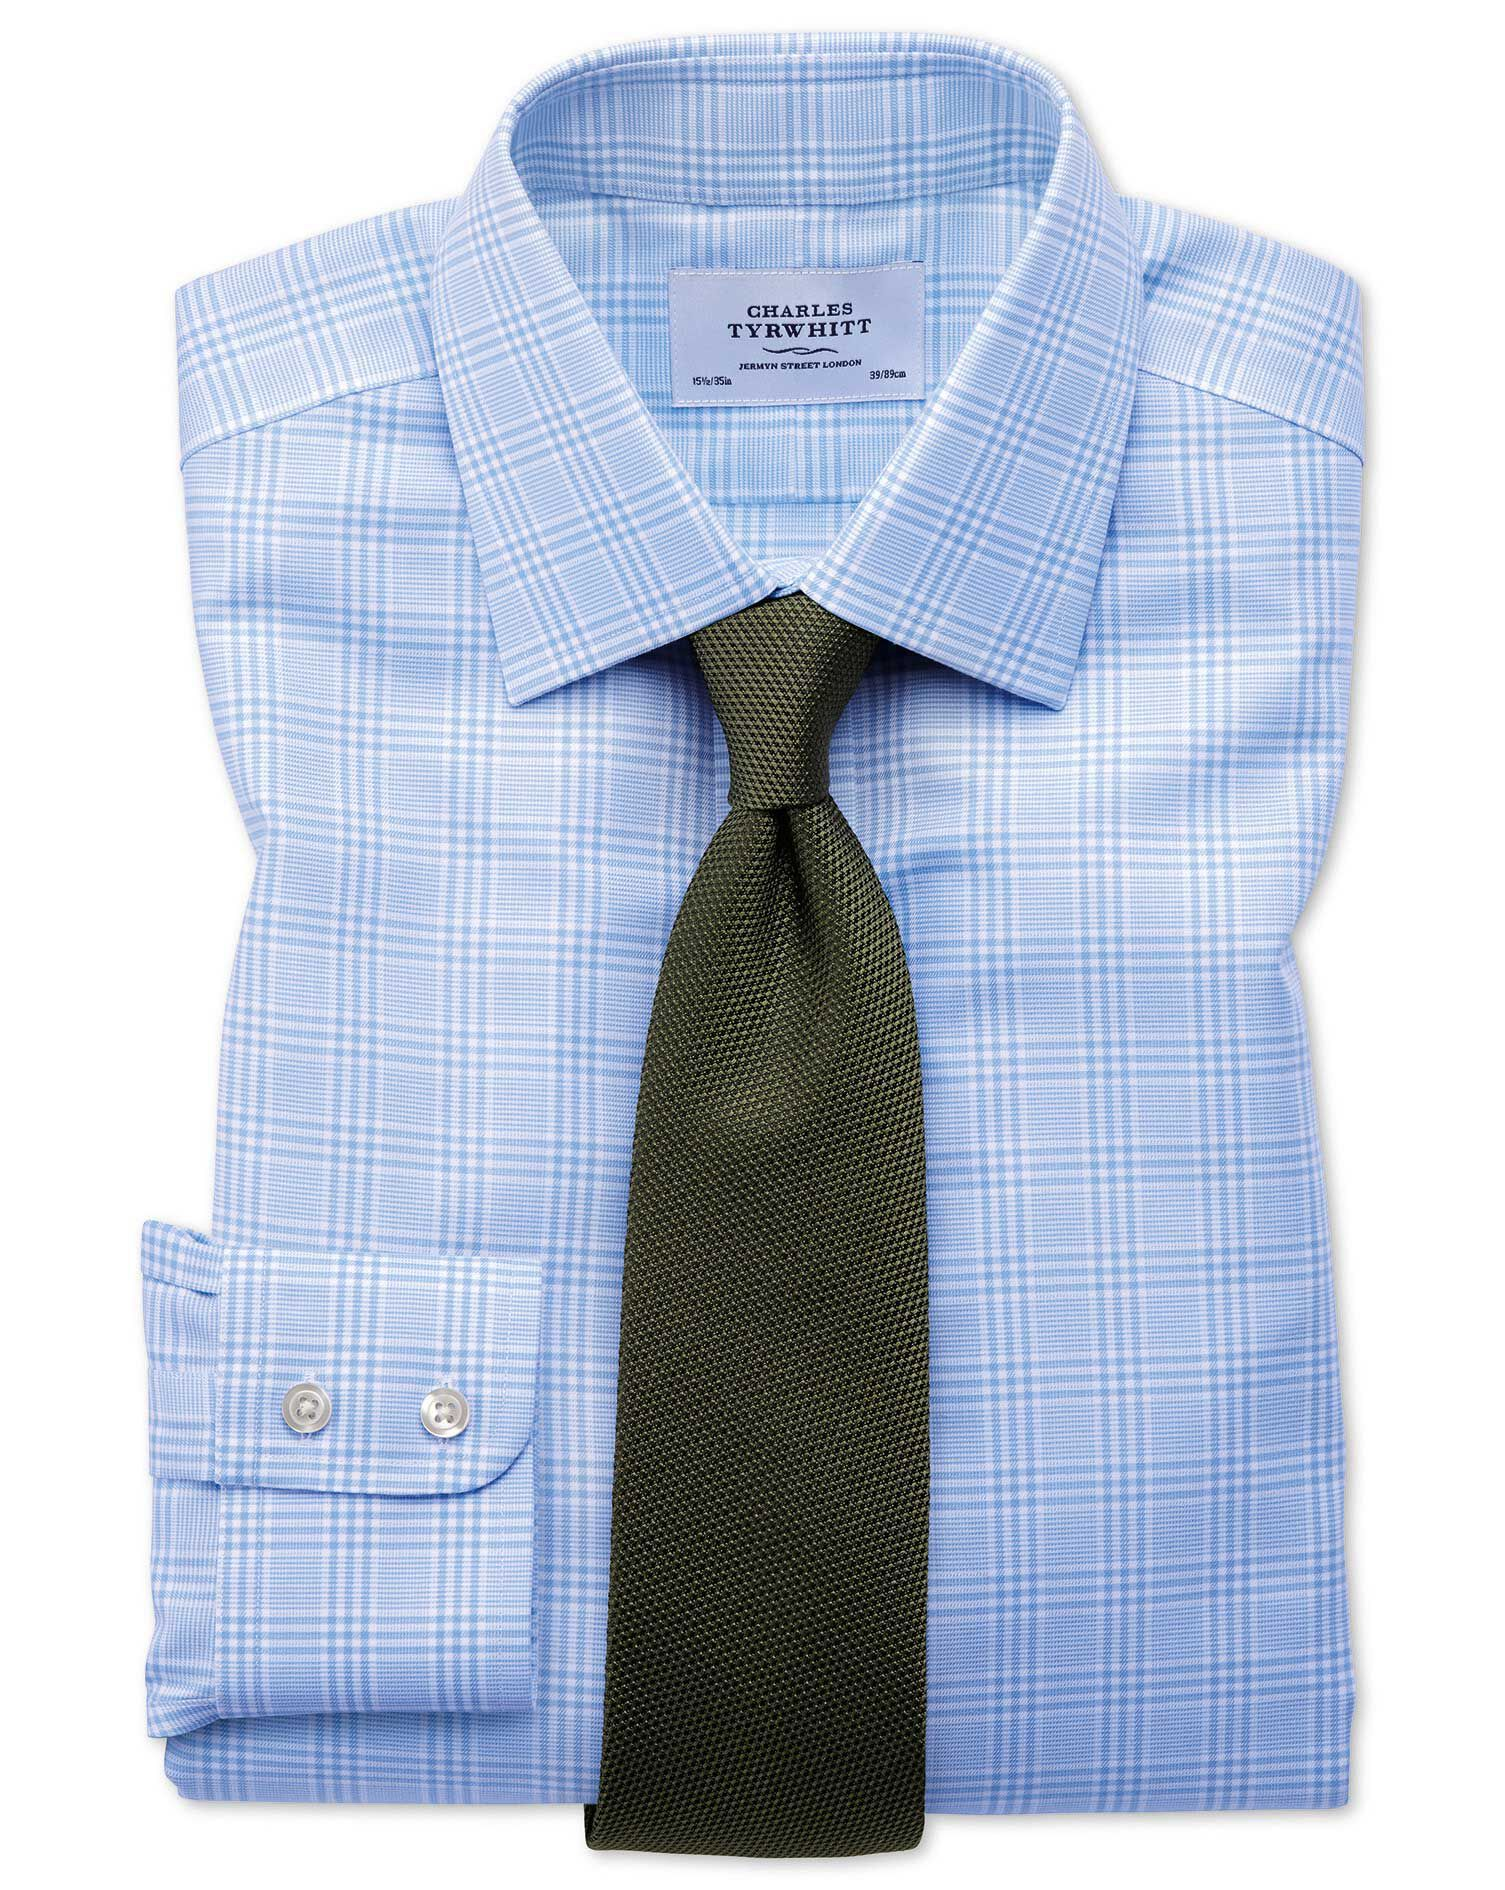 Classic Fit Non-Iron Prince Of Wales Sky Blue Cotton Formal Shirt Single Cuff Size 15.5/37 by Charle